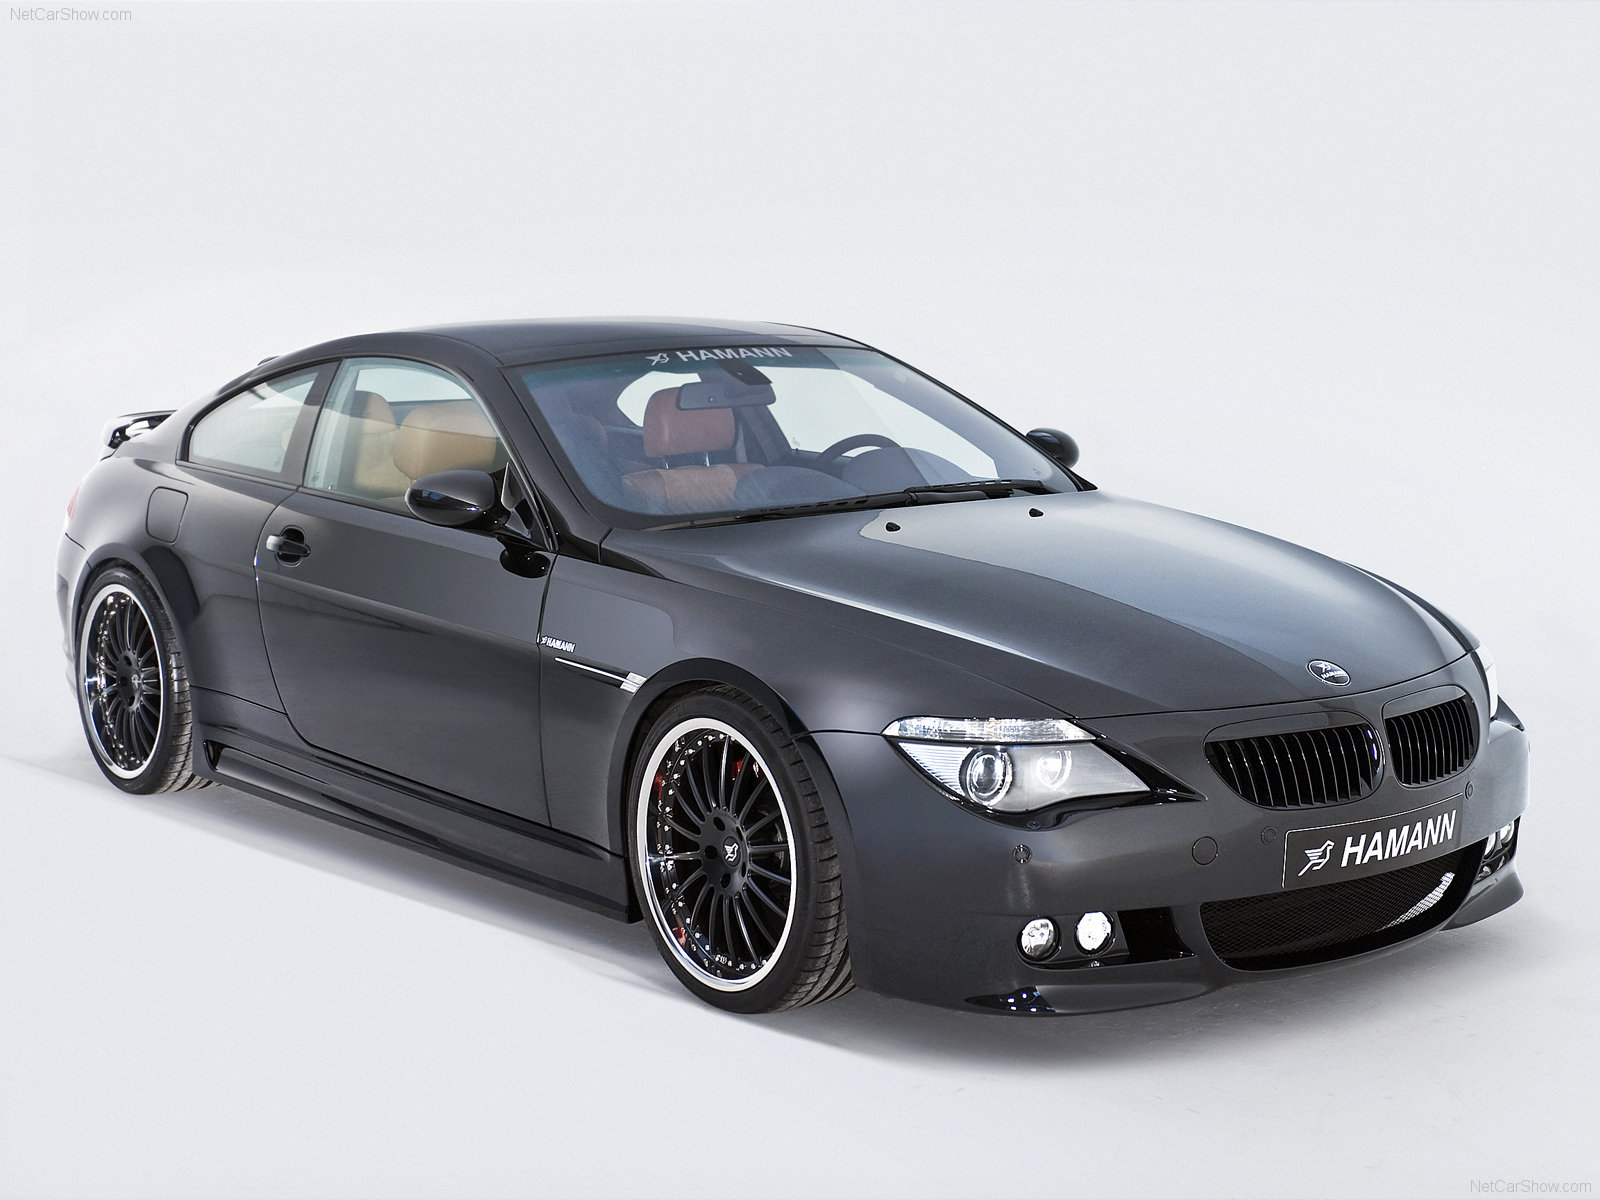 hamann bmw 6 series picture 56695 hamann photo gallery. Black Bedroom Furniture Sets. Home Design Ideas